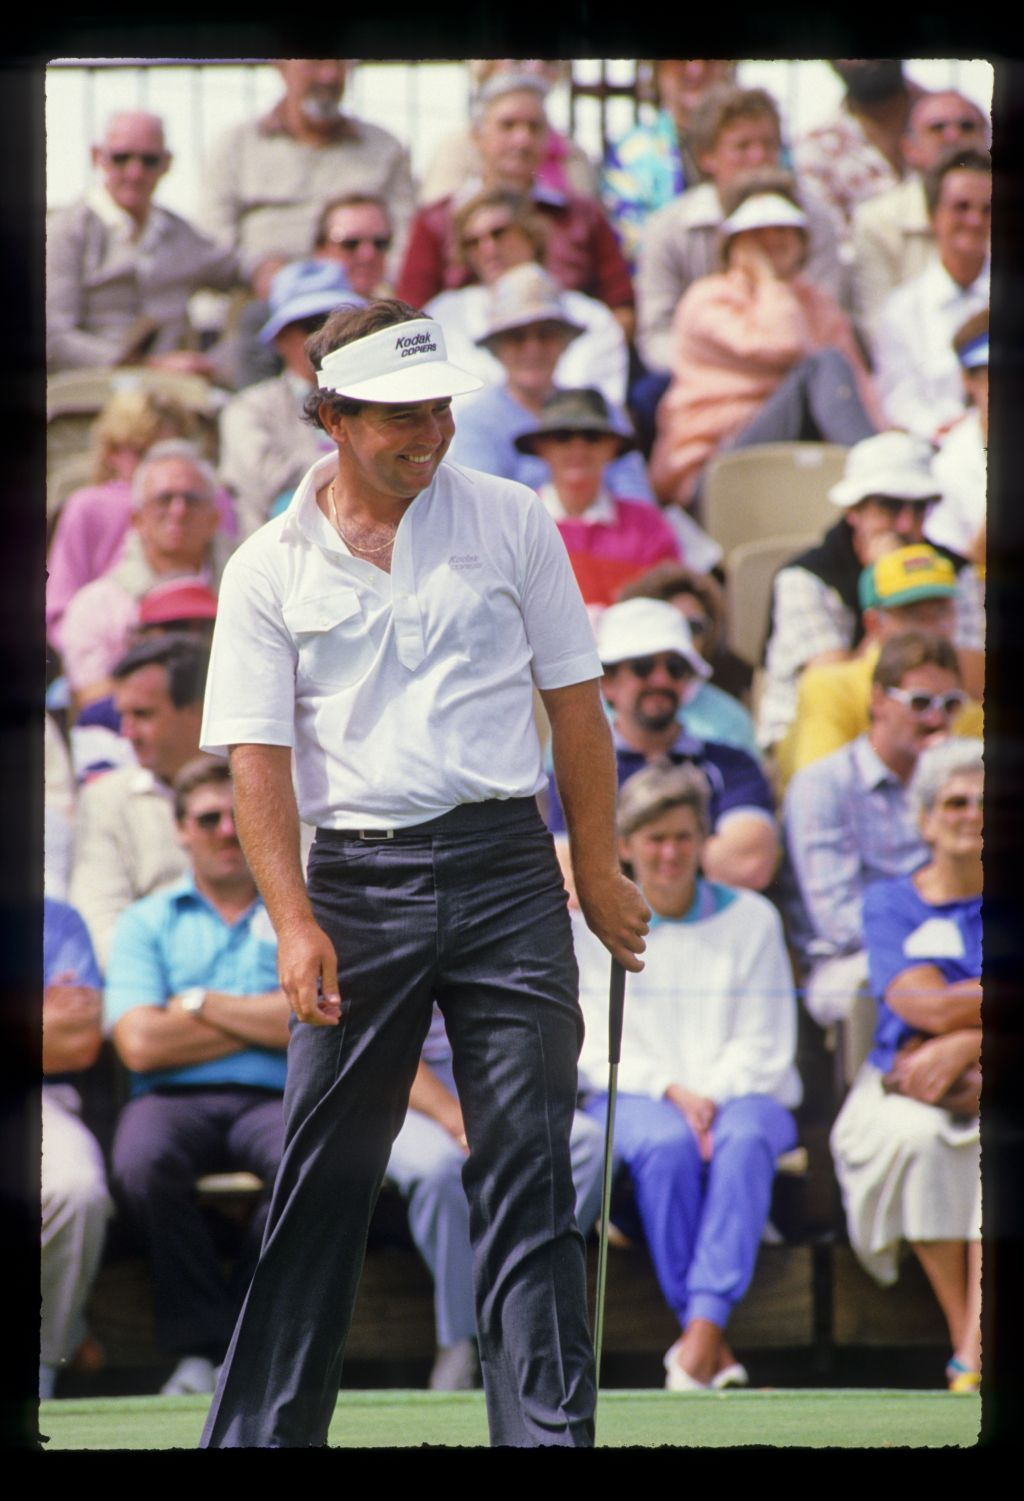 Mark O'Meara smiling after a putt on his way to winning the 1986 Australian Masters